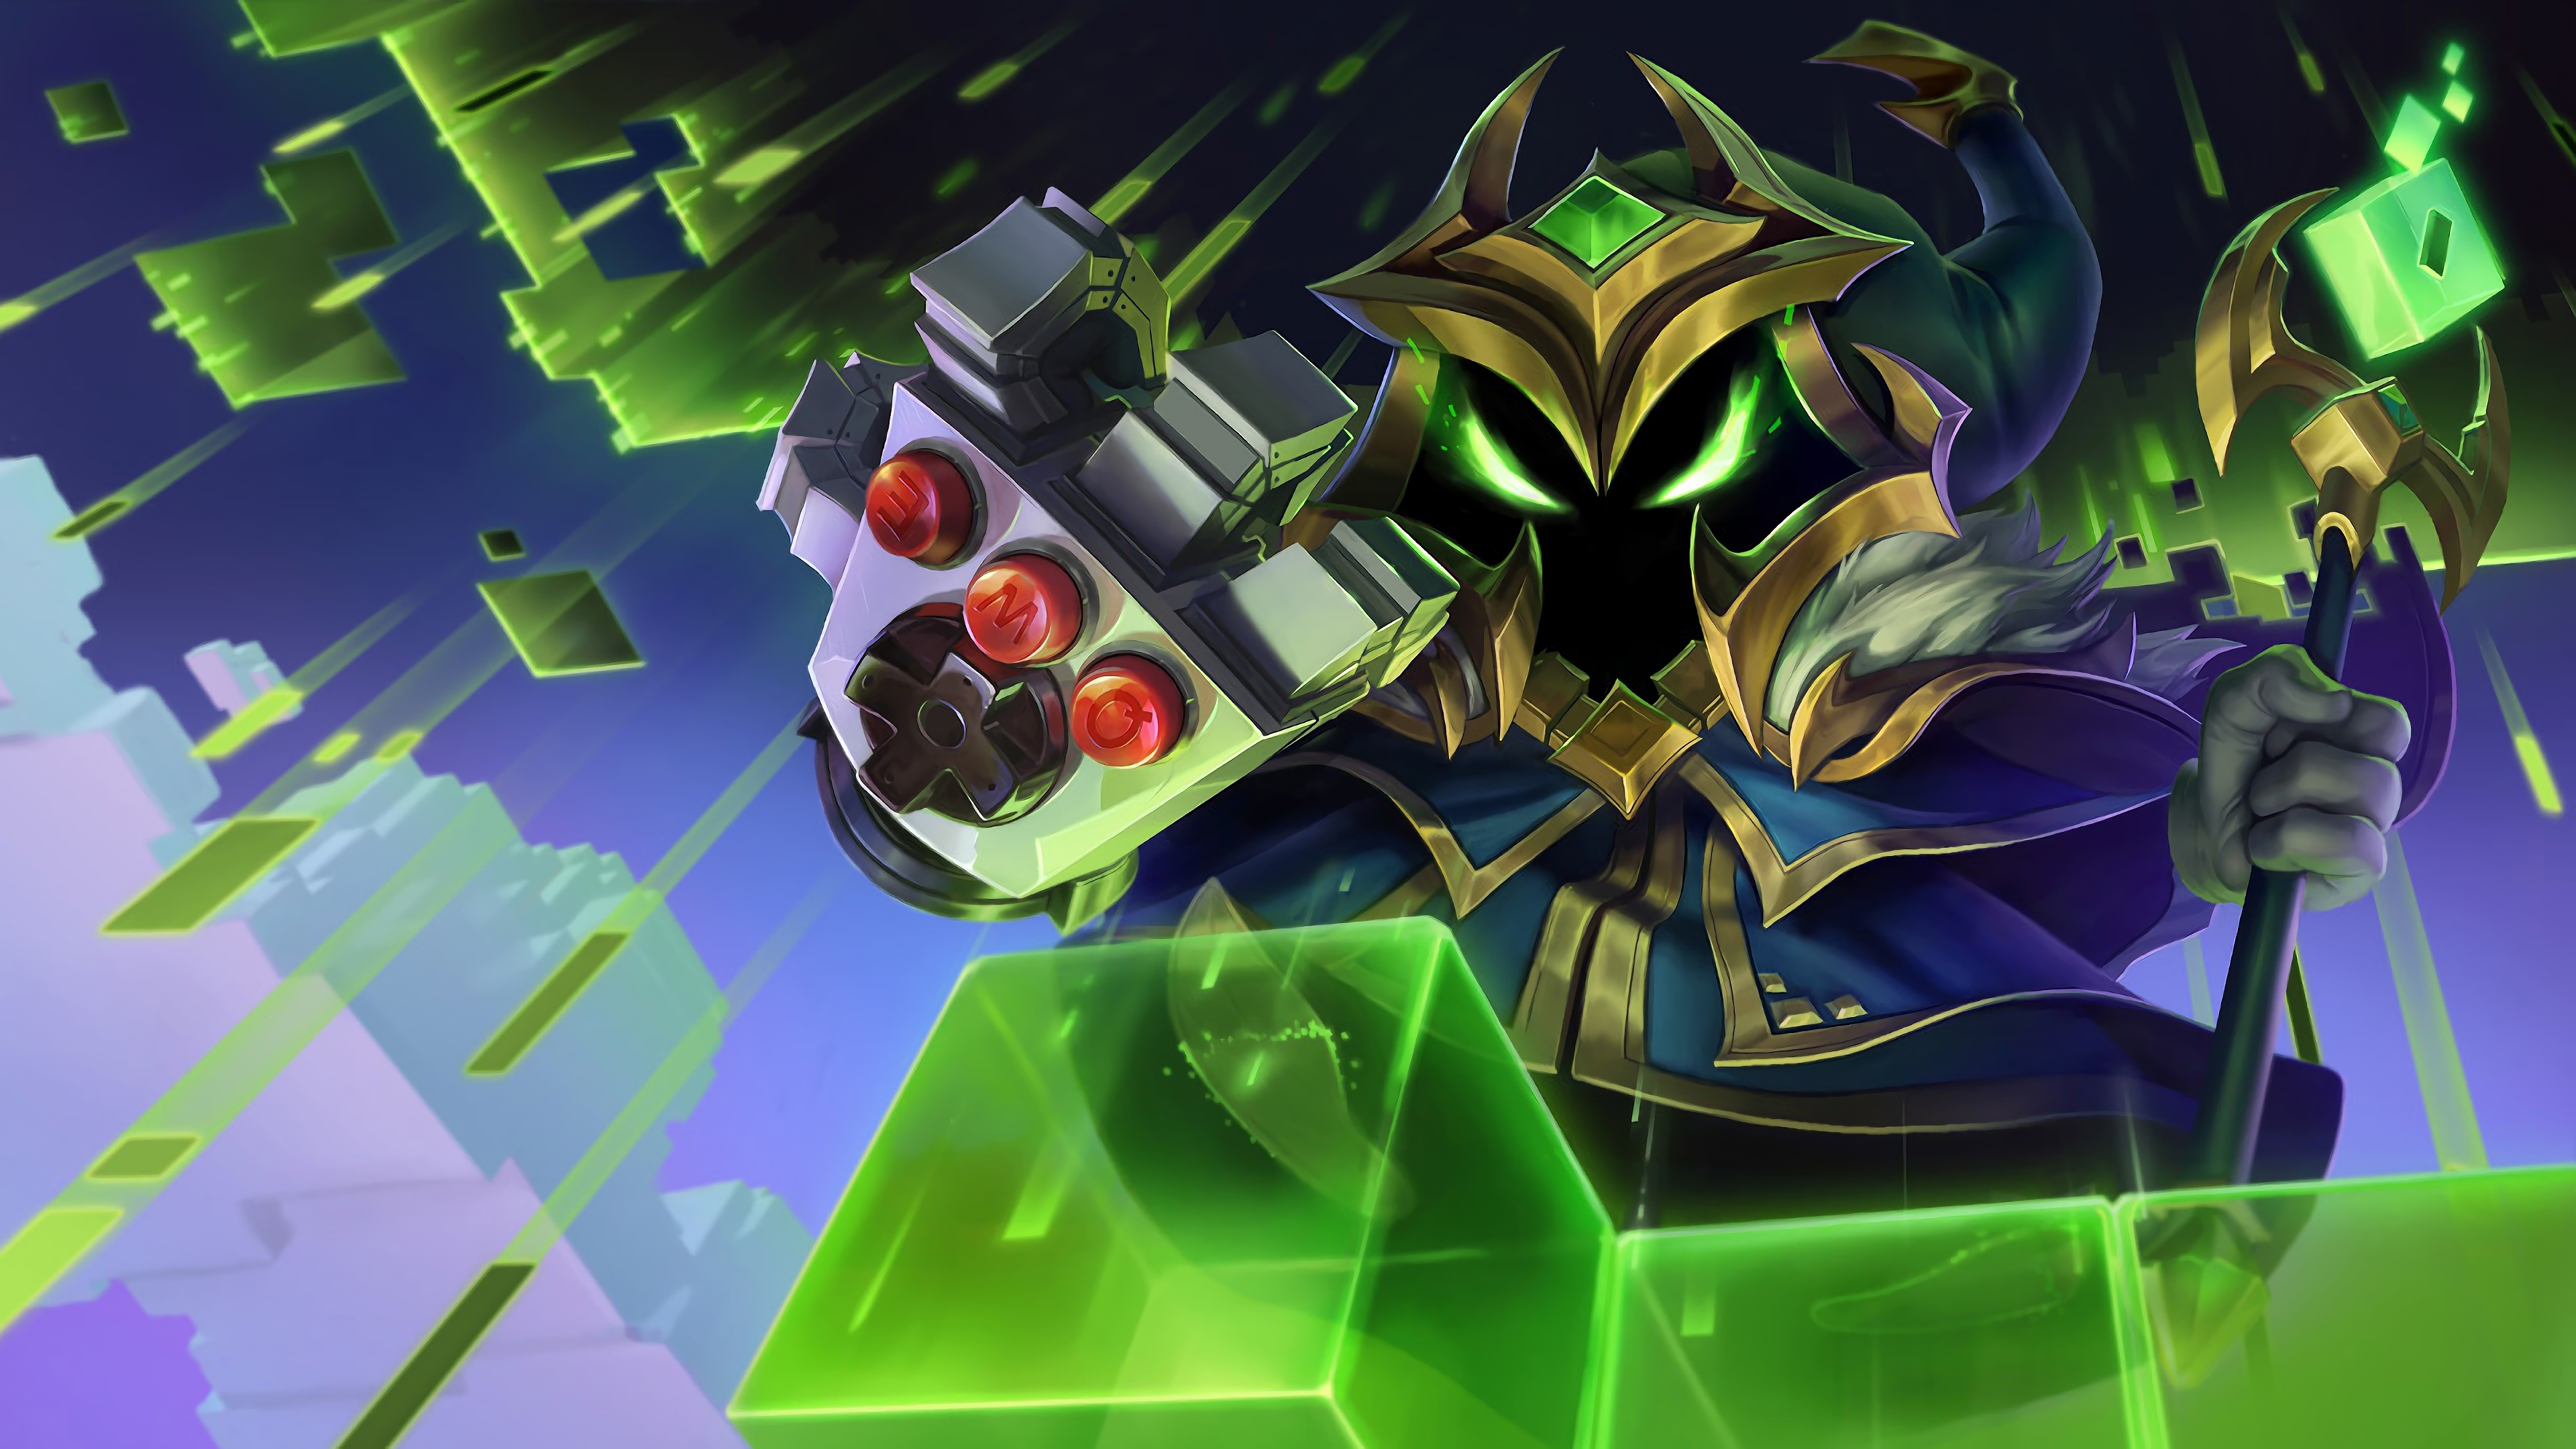 final boss veigar lol splash art league of legends 1574097790 - Final Boss Veigar LoL Splash Art League of Legends - Veigar, league of legends